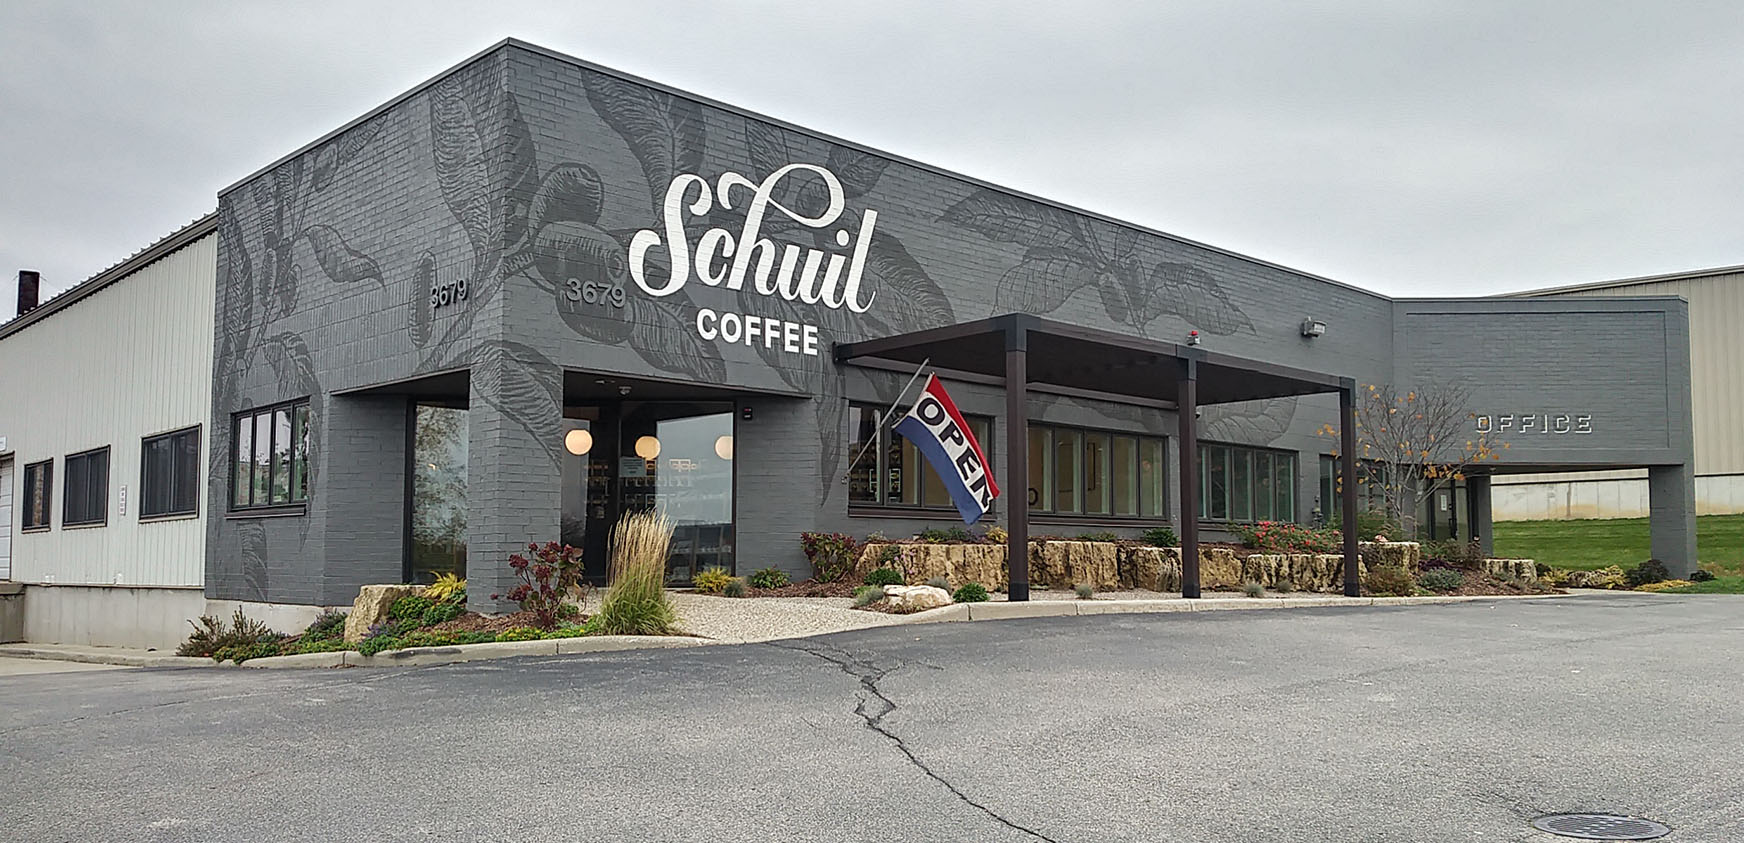 Schuil Coffee - Mural by Design